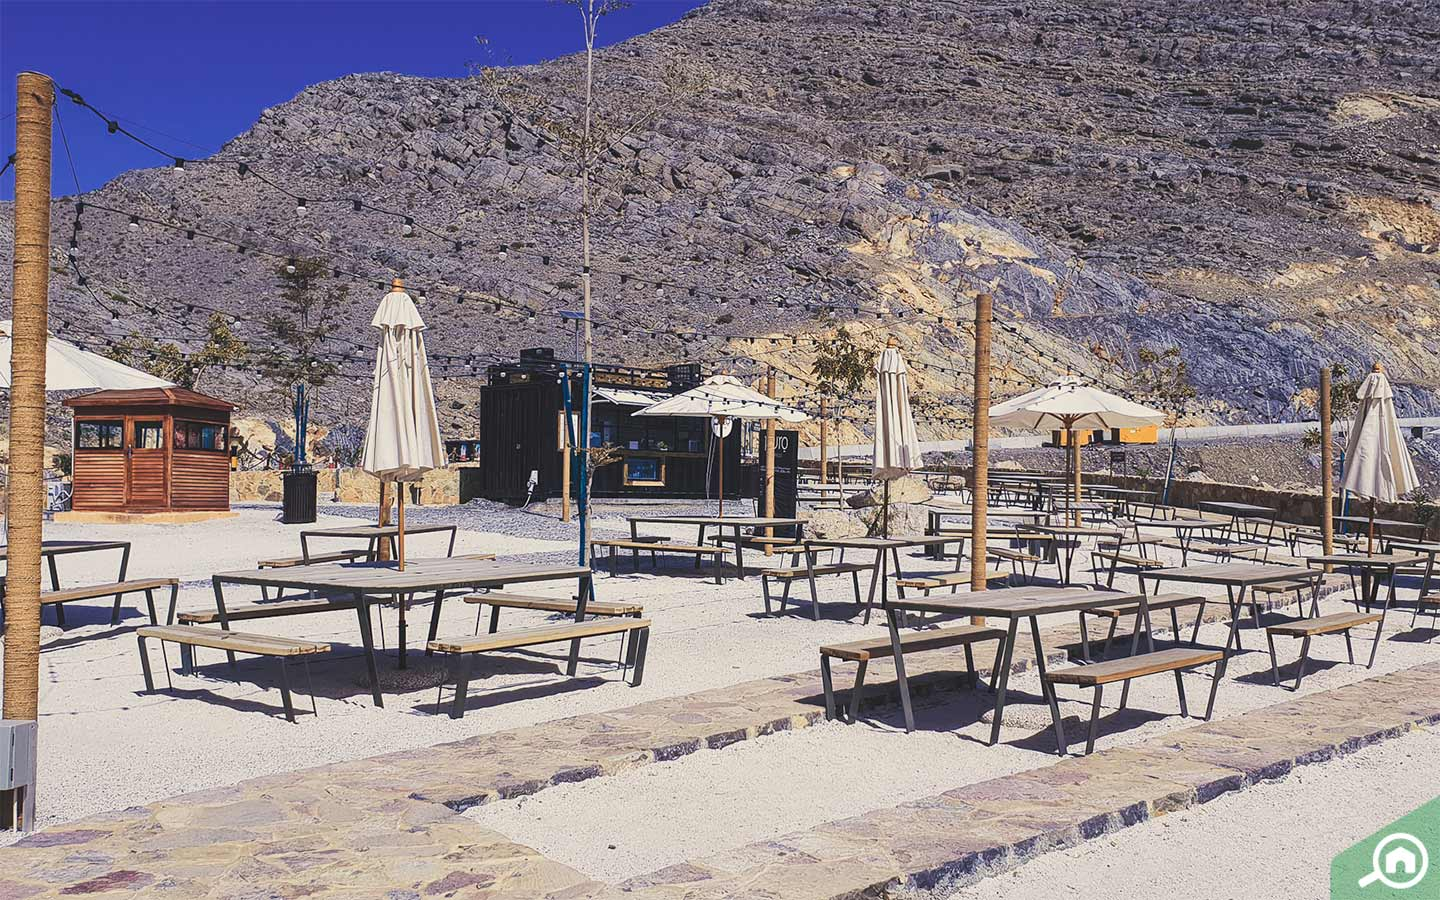 benches in jebel jais